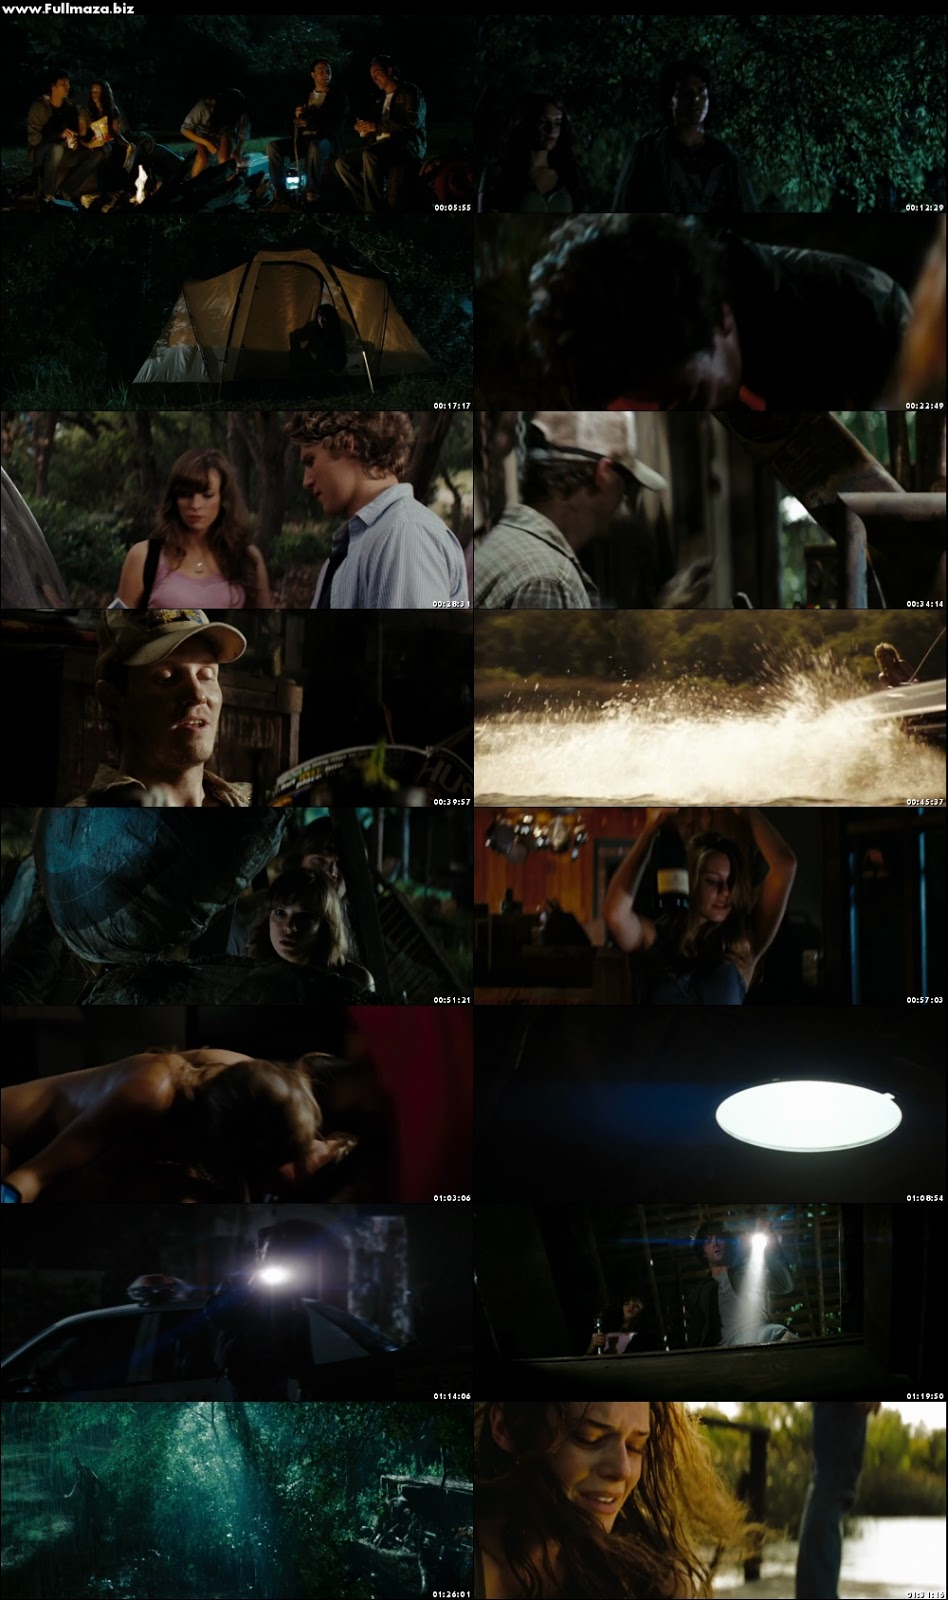 friday the 13th full movie download in hindi 480p